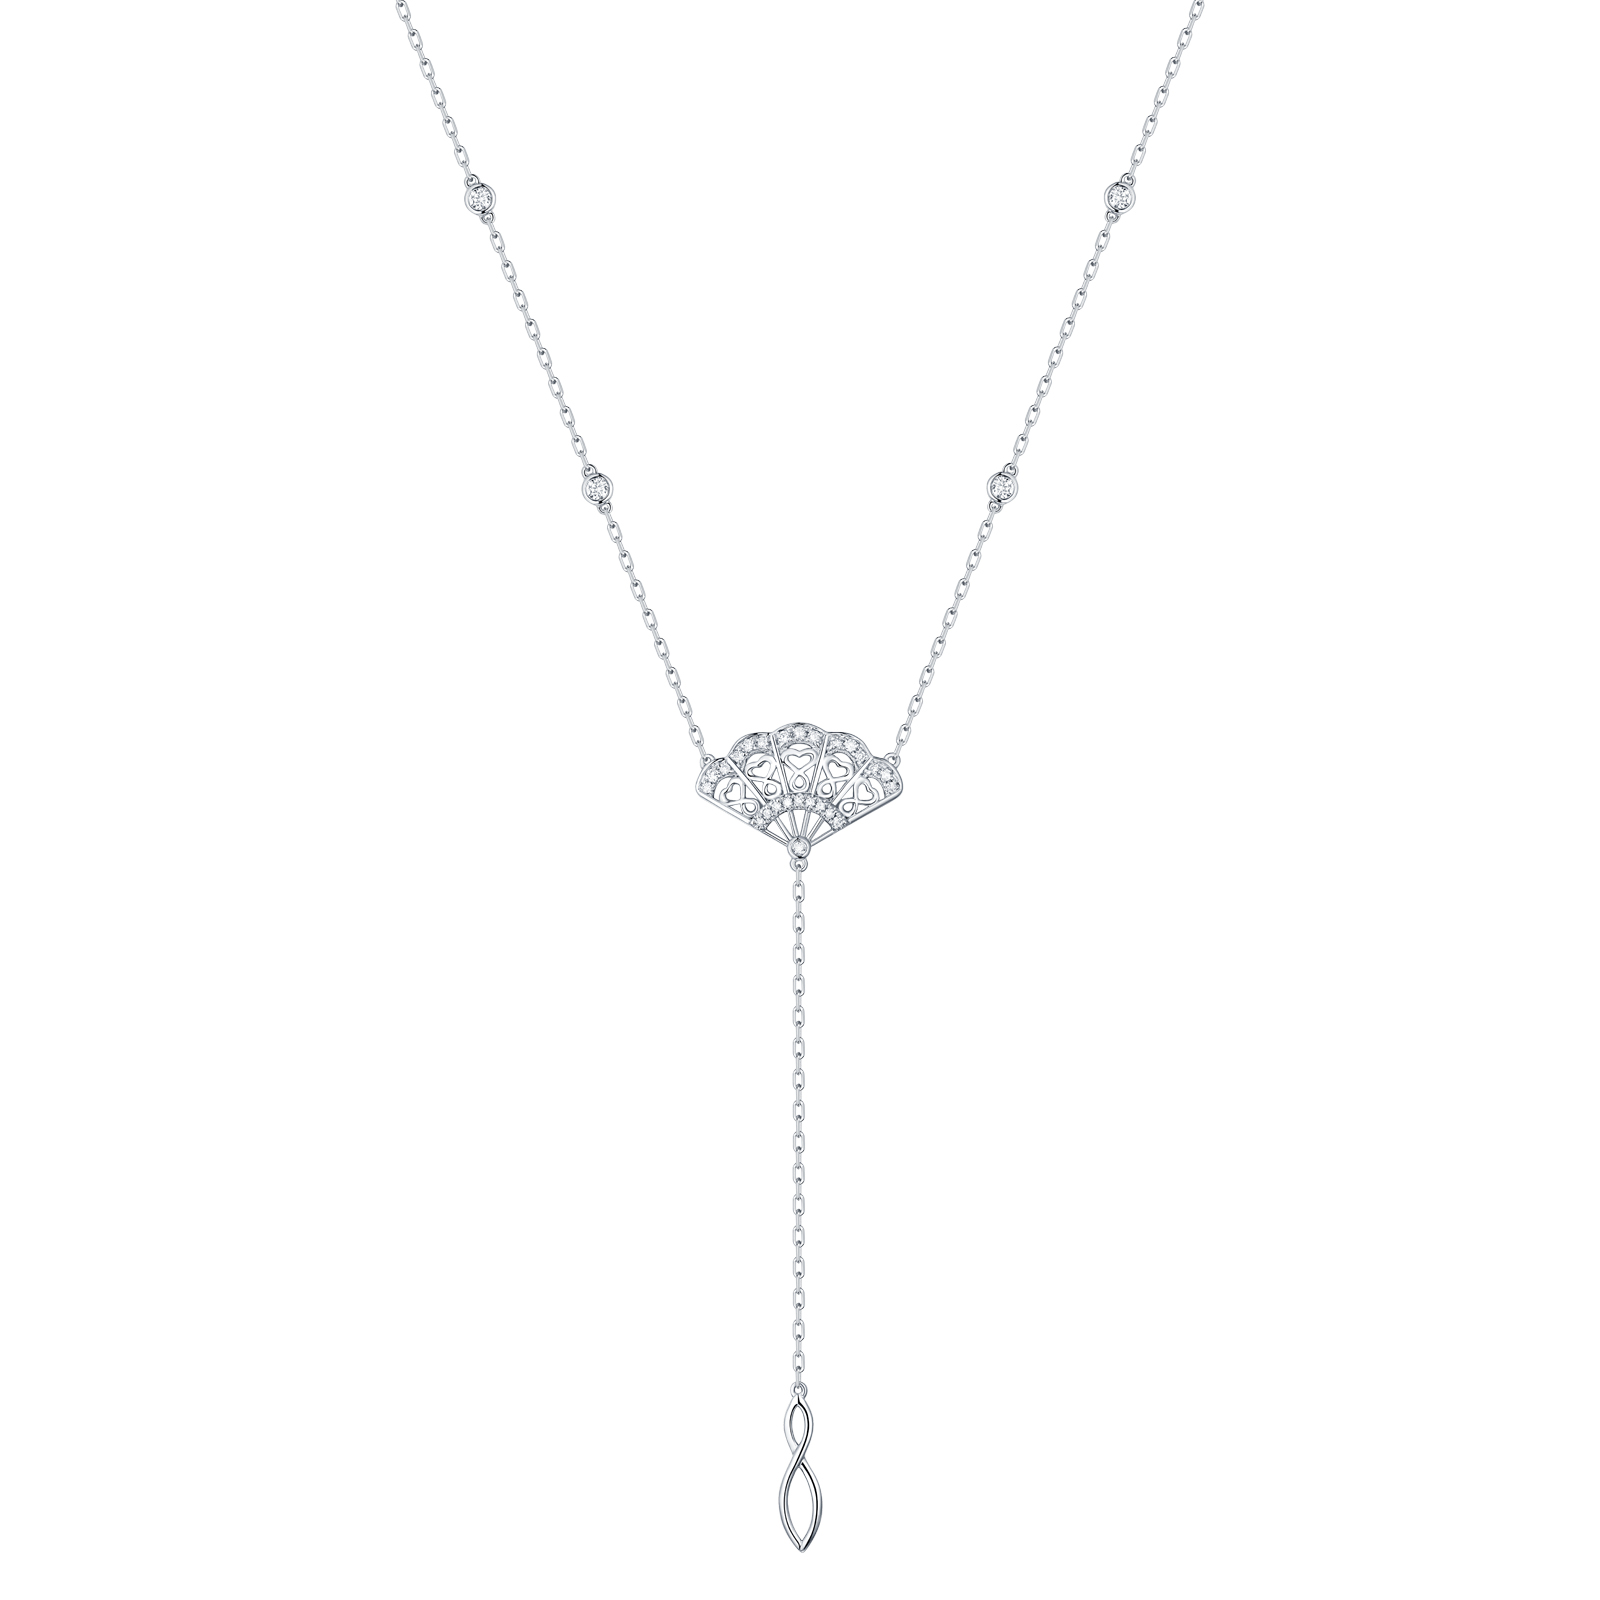 NL29927WHT- 14K White Gold Diamond Necklace, 0.23 TCW